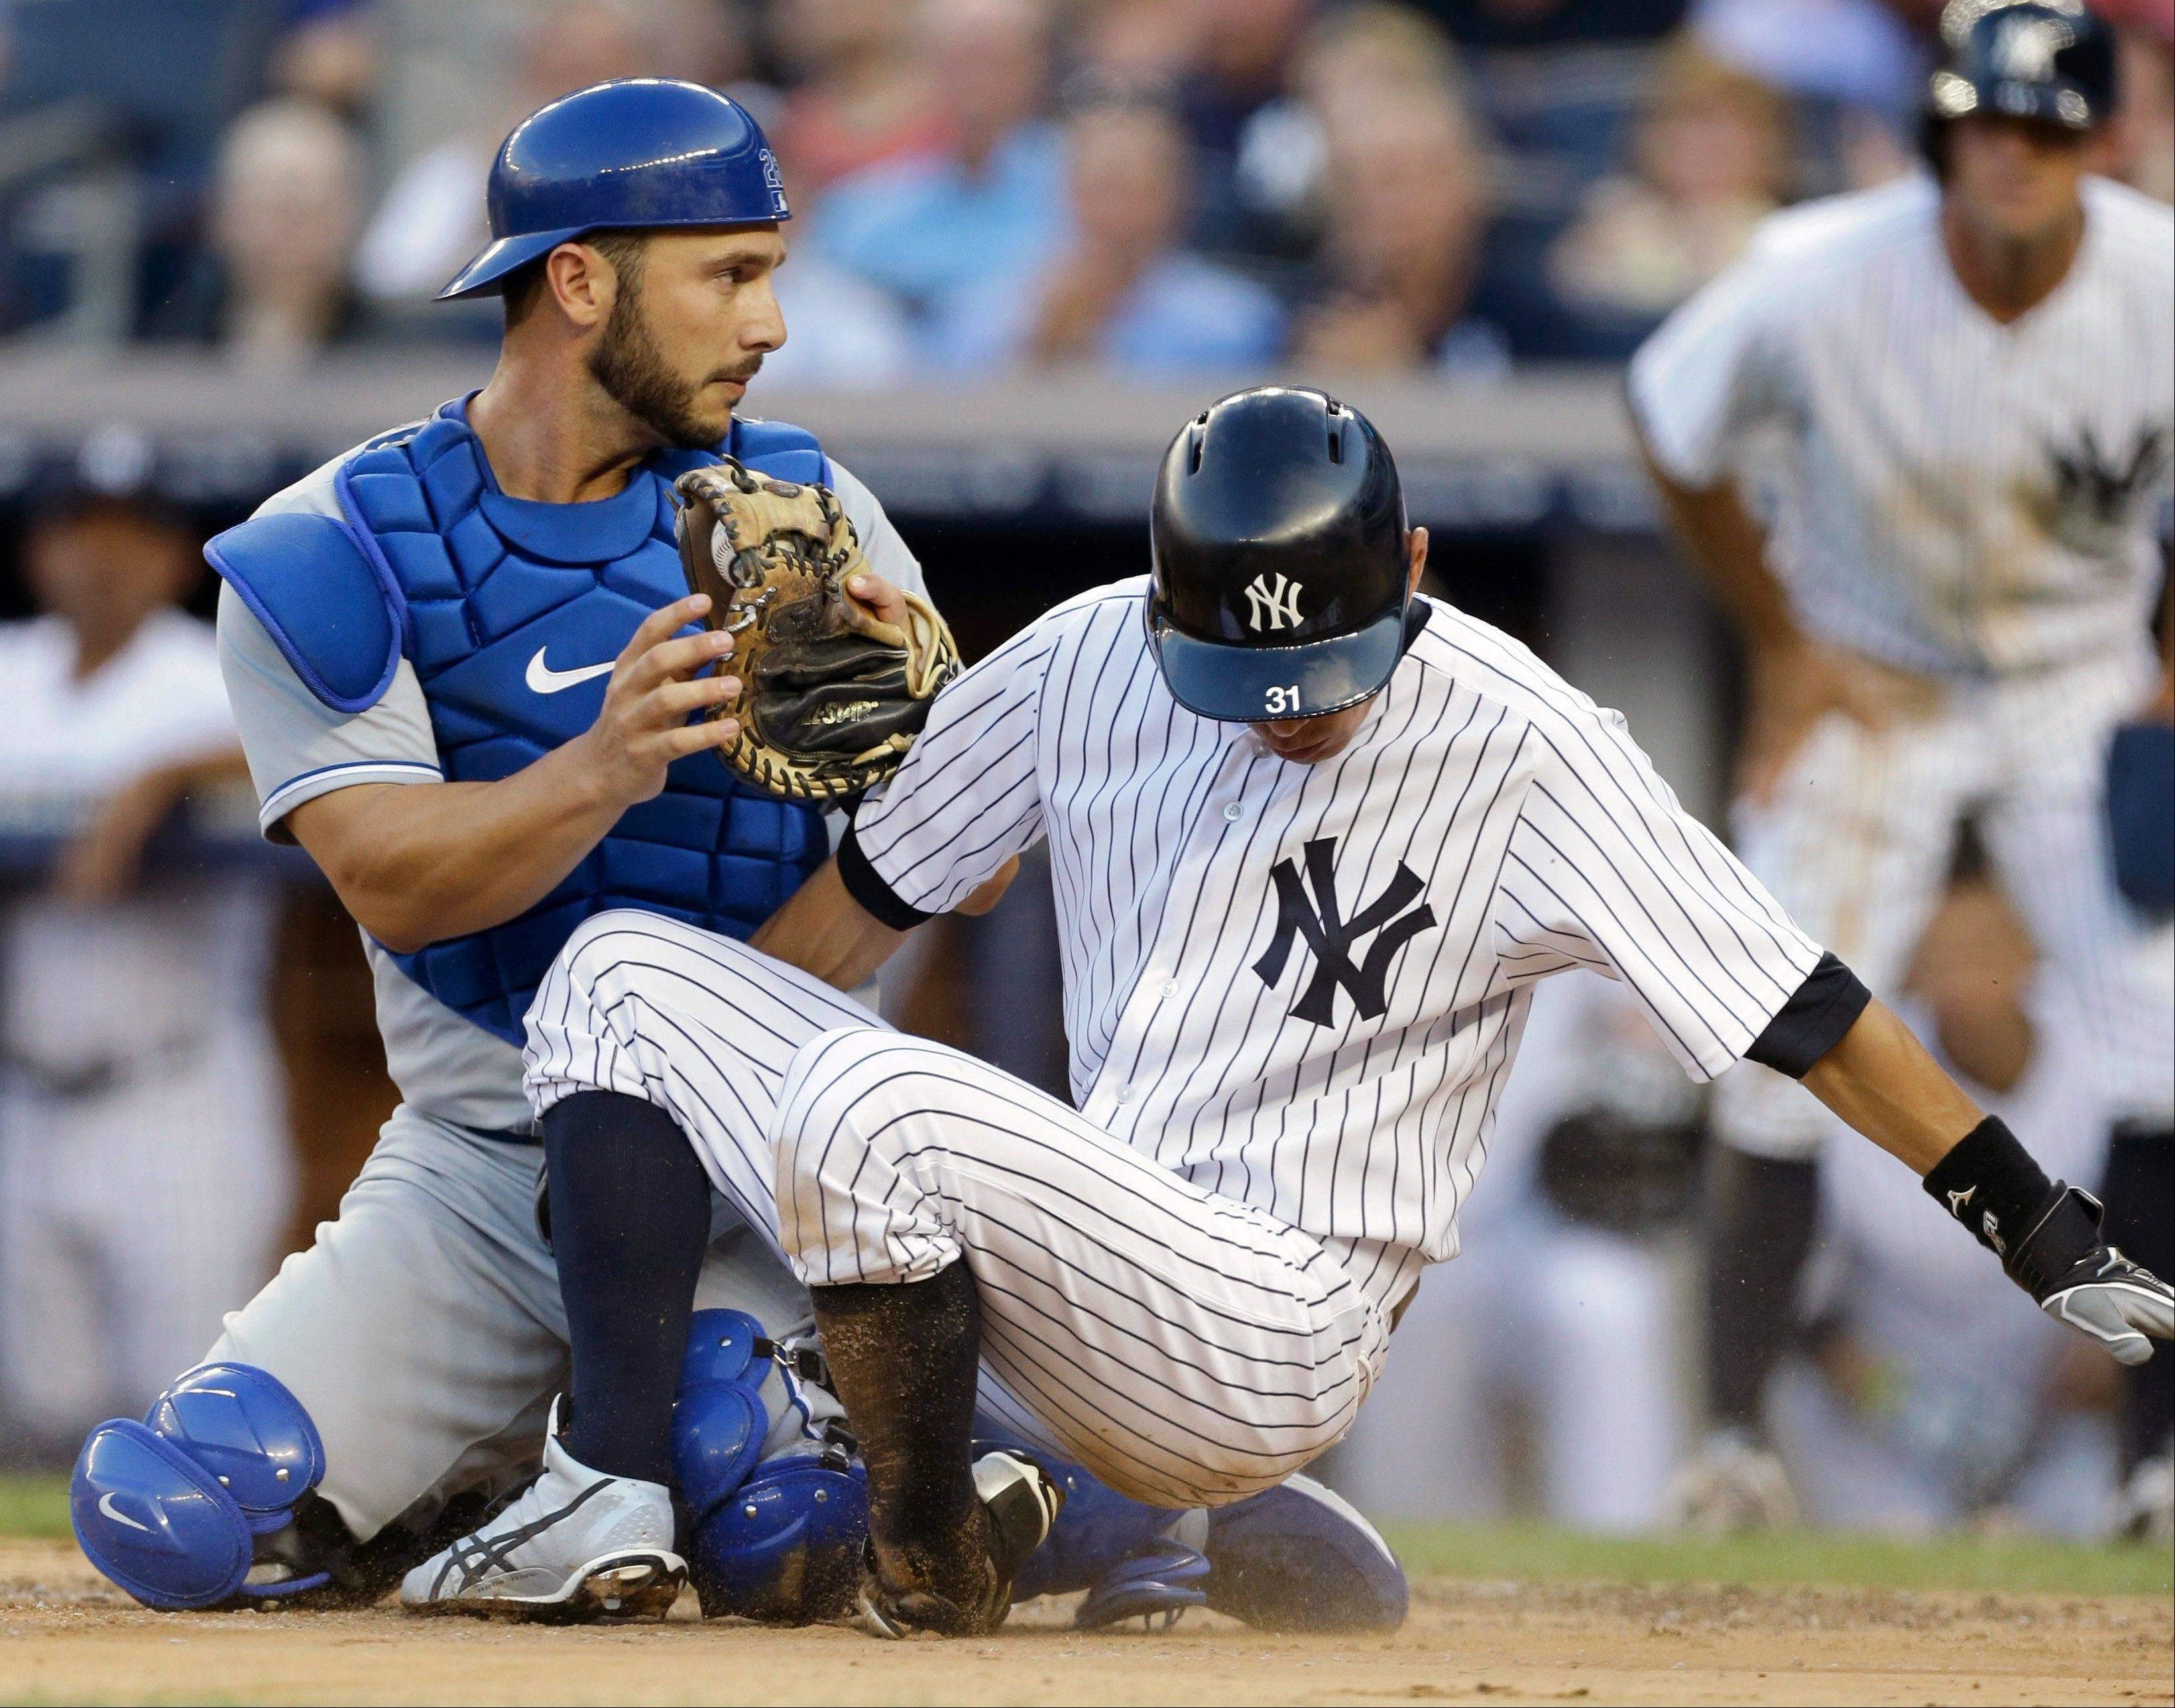 In a cash deal, the Cubs acquired catcher George Kottaras, a left-handed hitter, from the Kansas City Royals on Tuesday.